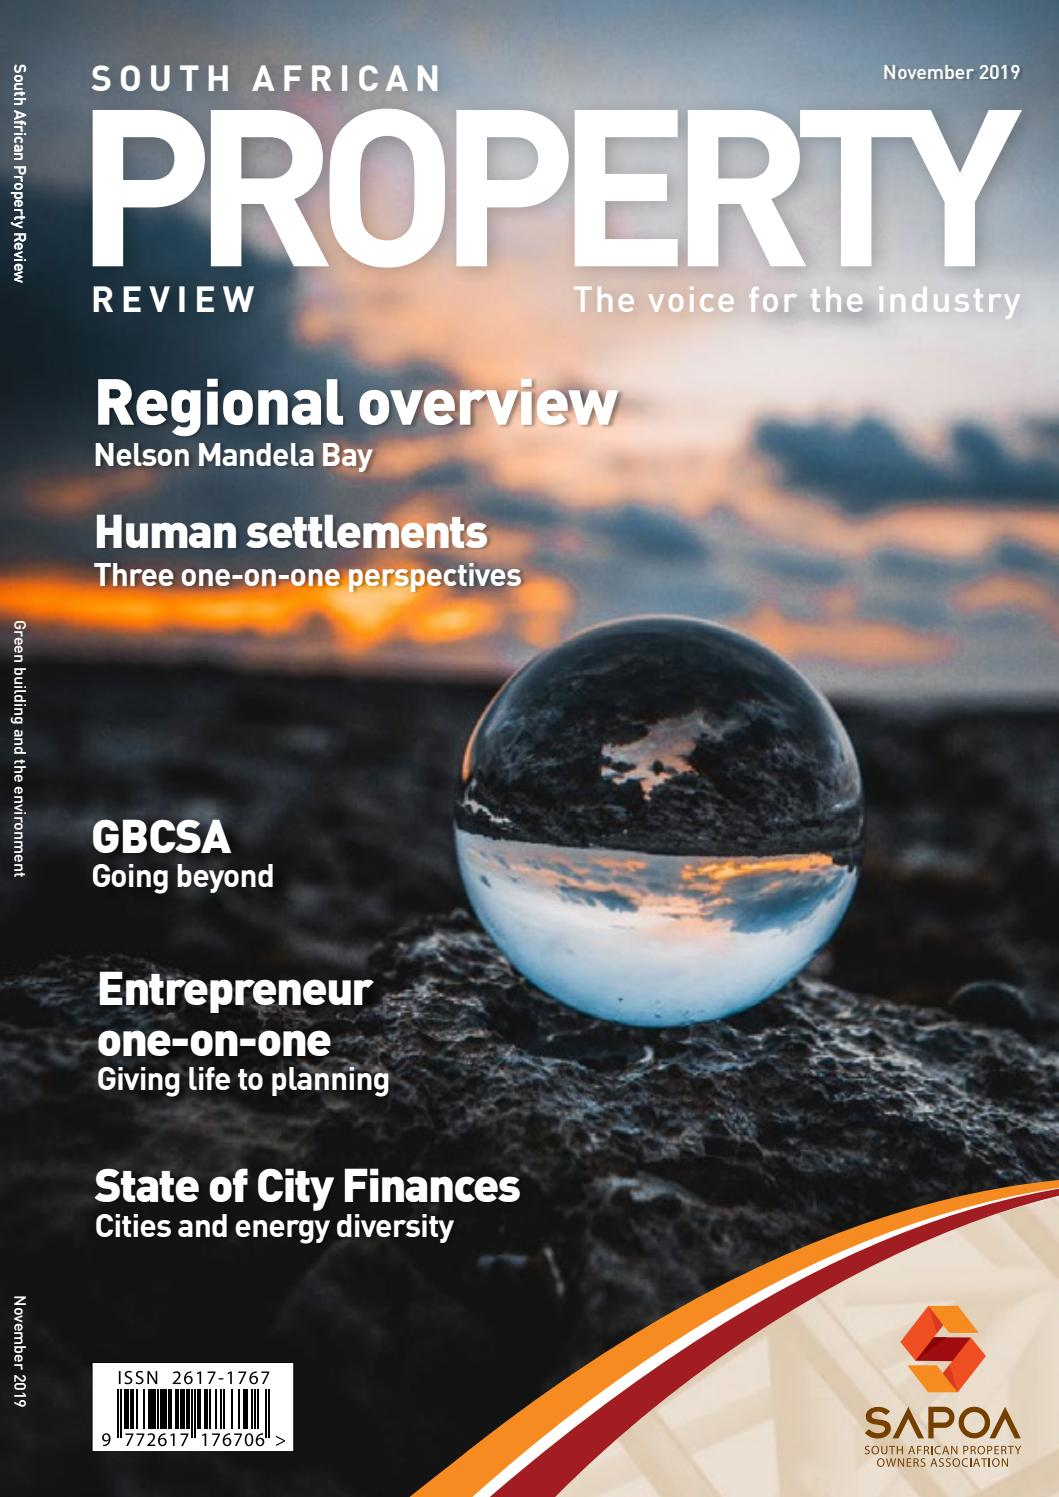 South African Property Review November 2019 By Sapoa Issuu